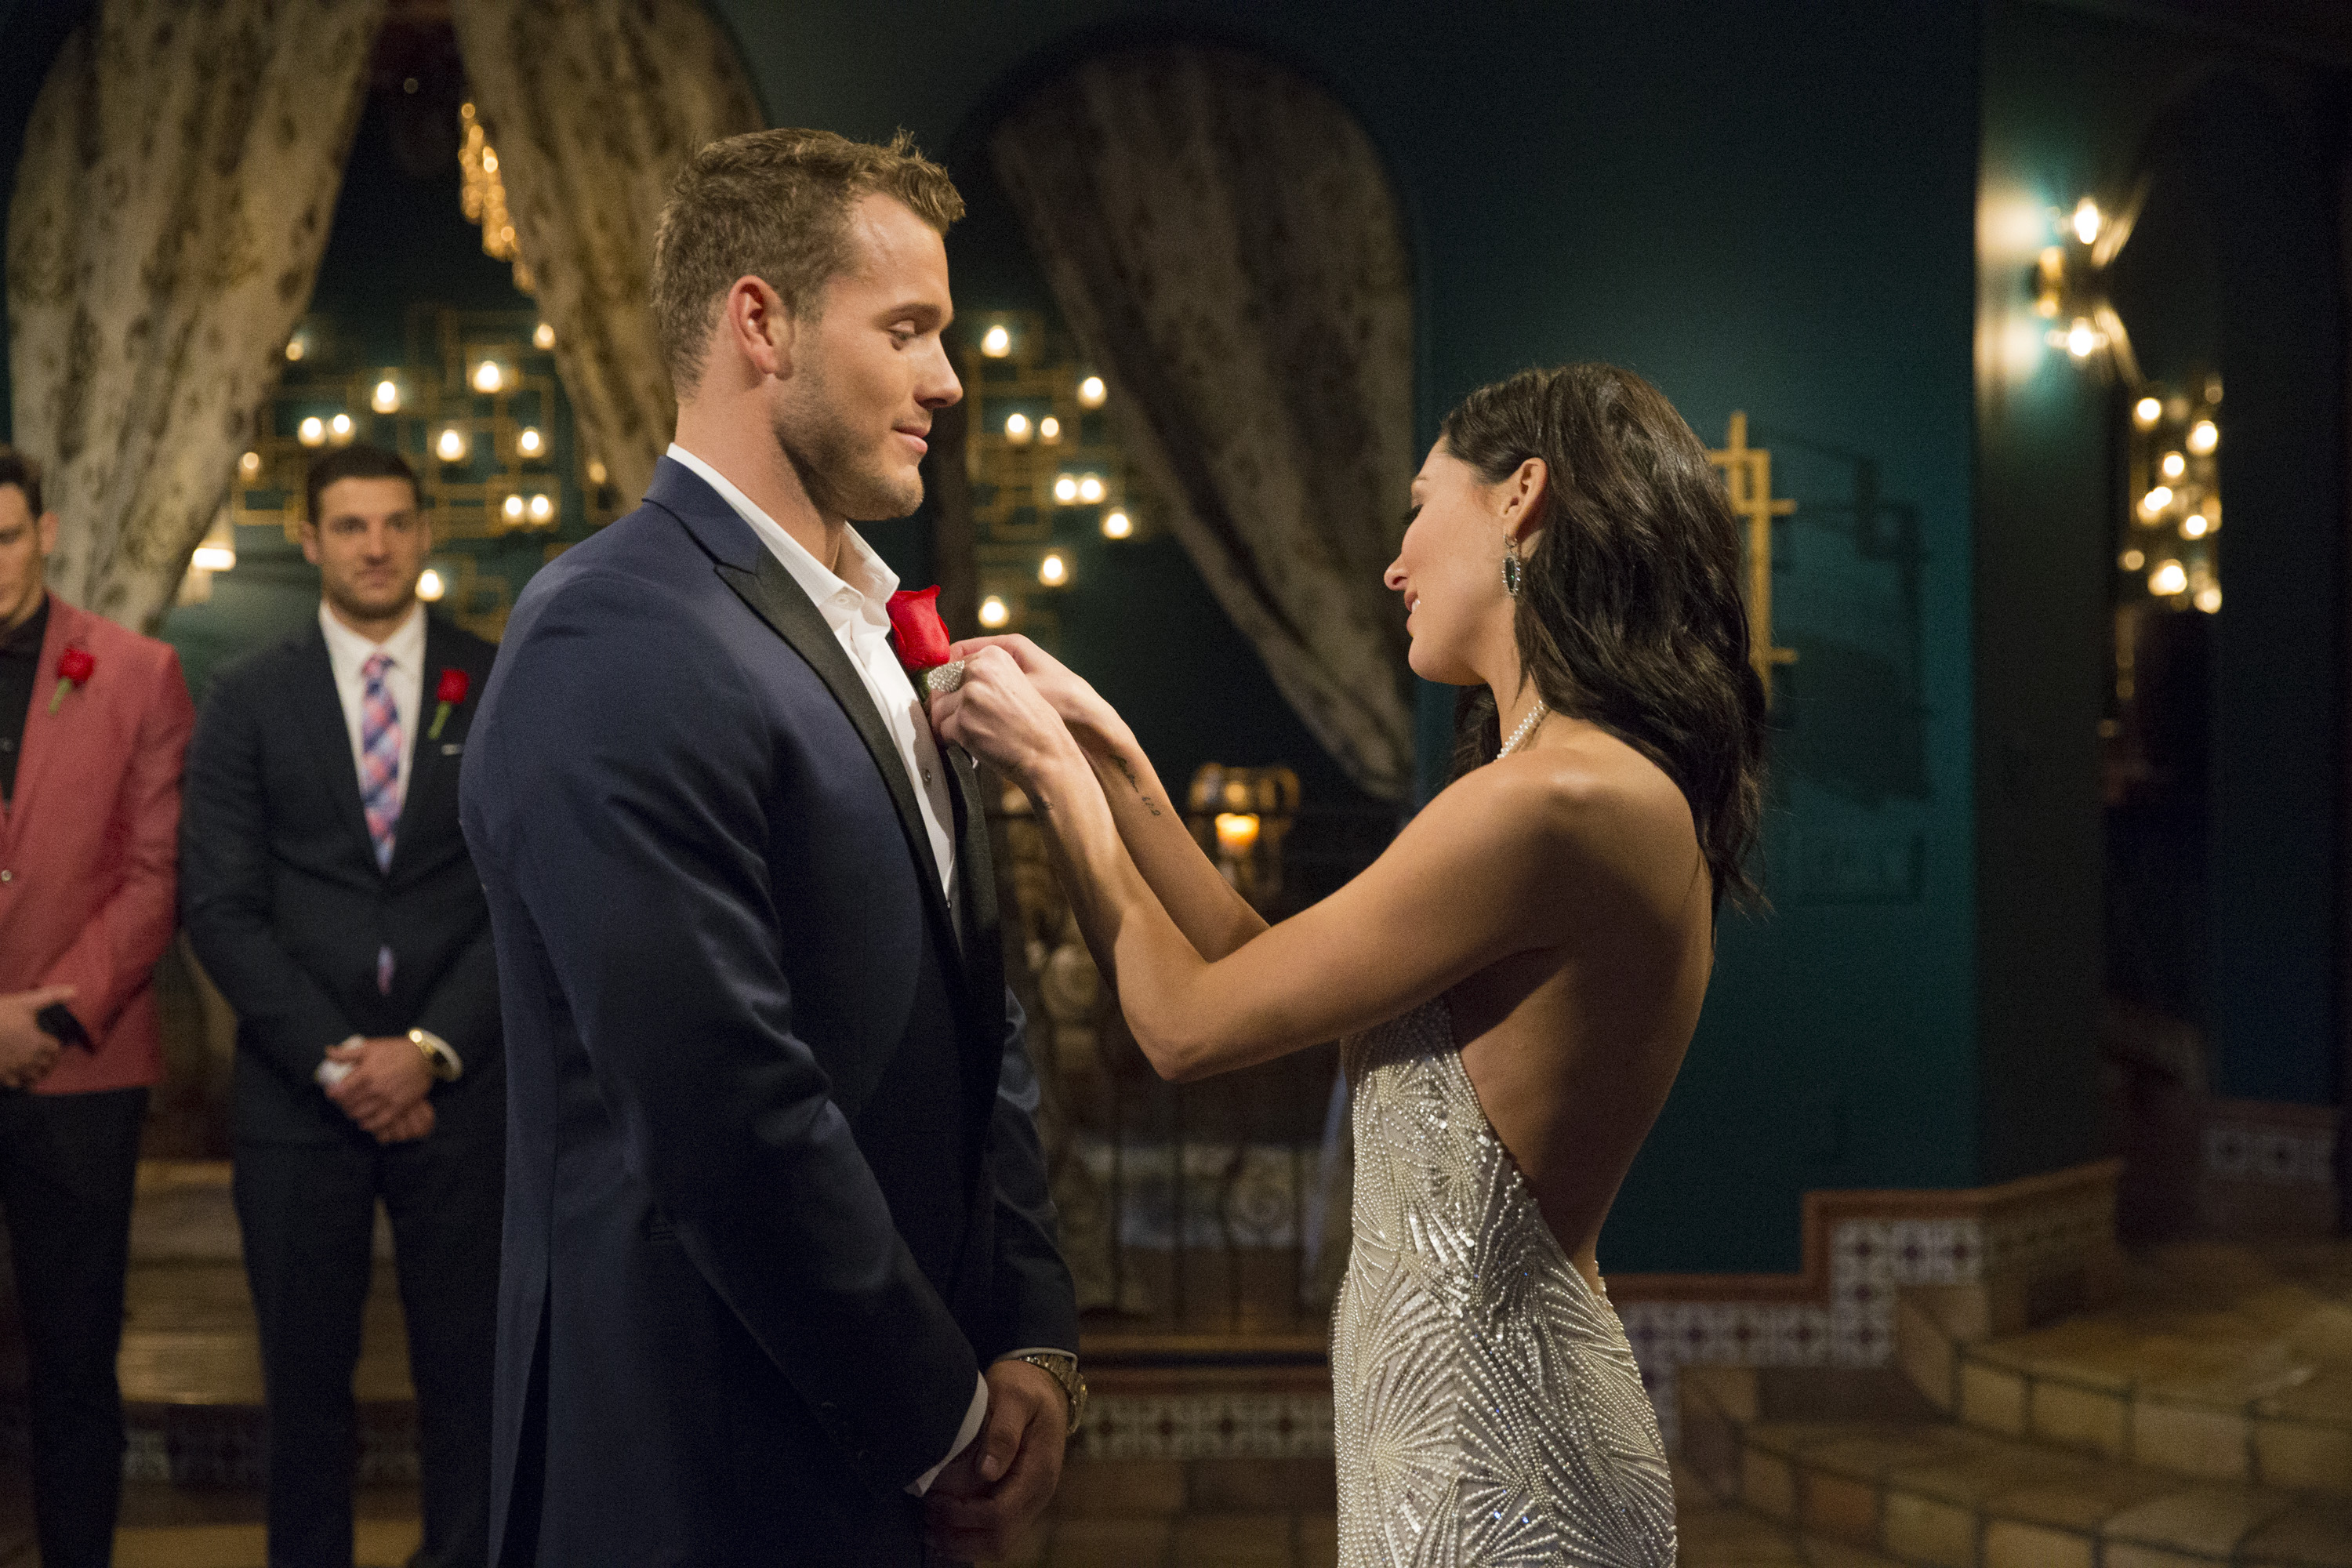 Throughout Becca's season, the theme of honesty was a high priority for the Bachelorette who had previously been jilted by the untruthful Arie. Colton made it clear from the beginning he intended to be open and honest and communicative. He divulged his brief relationship with Tia early on, and assured Becca he was there for her.{ }(Image: ABC/Paul Hebert)